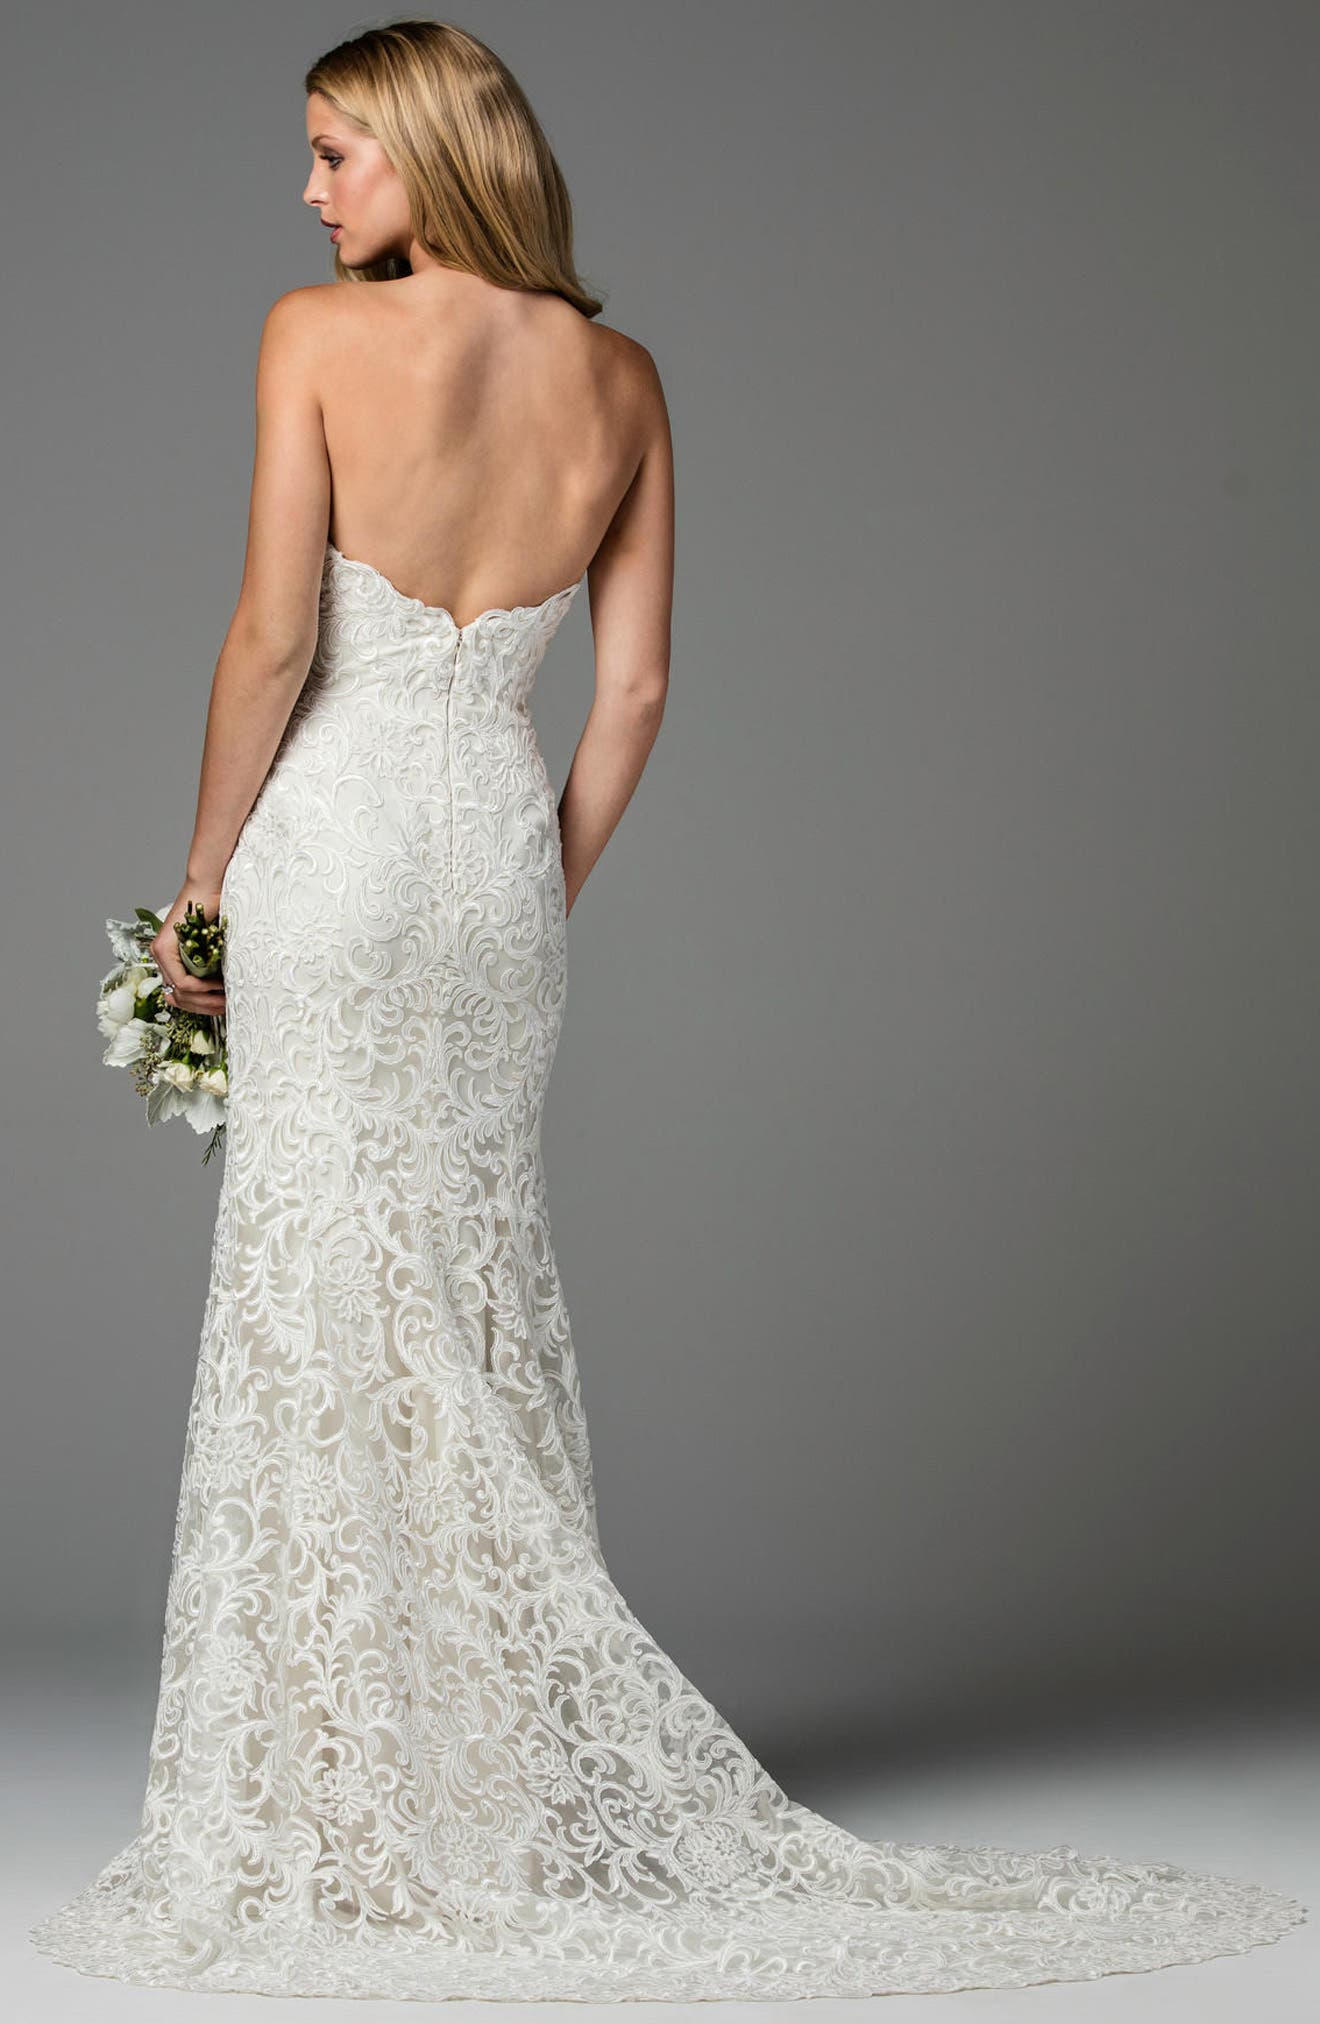 Pauline Strapless Lace Mermaid Gown,                             Alternate thumbnail 2, color,                             IVORY/ OYSTER